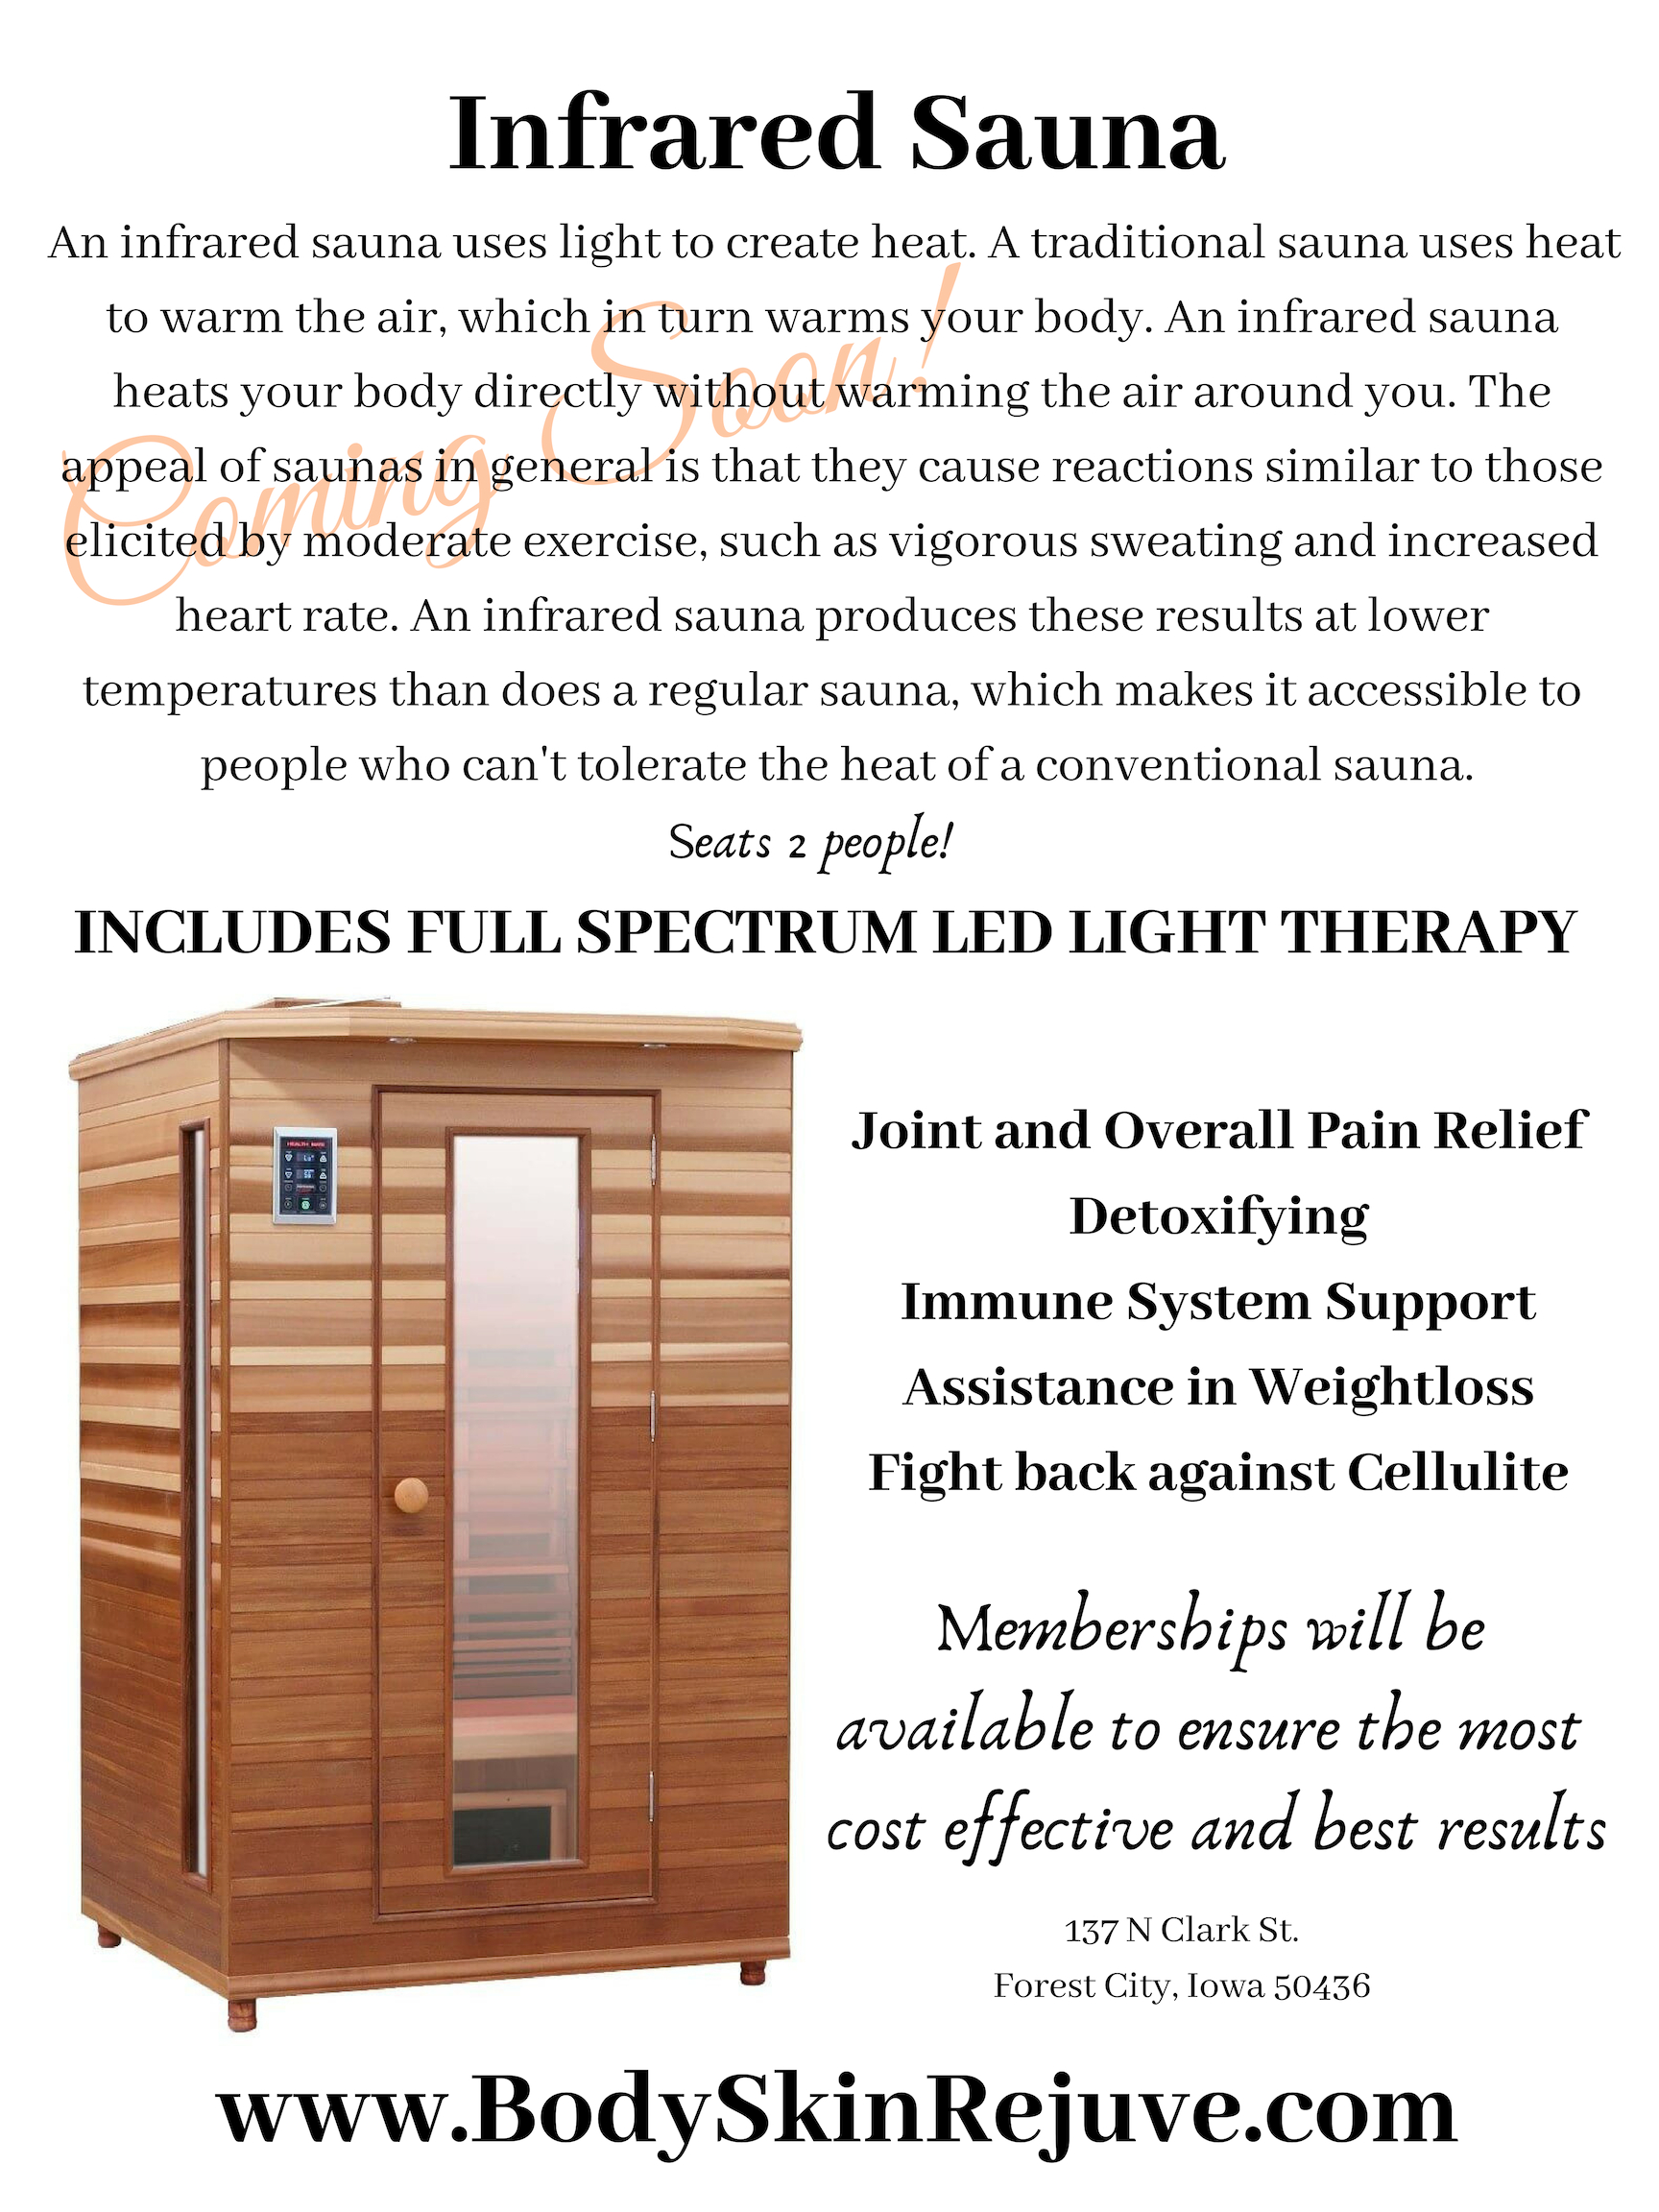 Infrared Sauna Coming Soon!